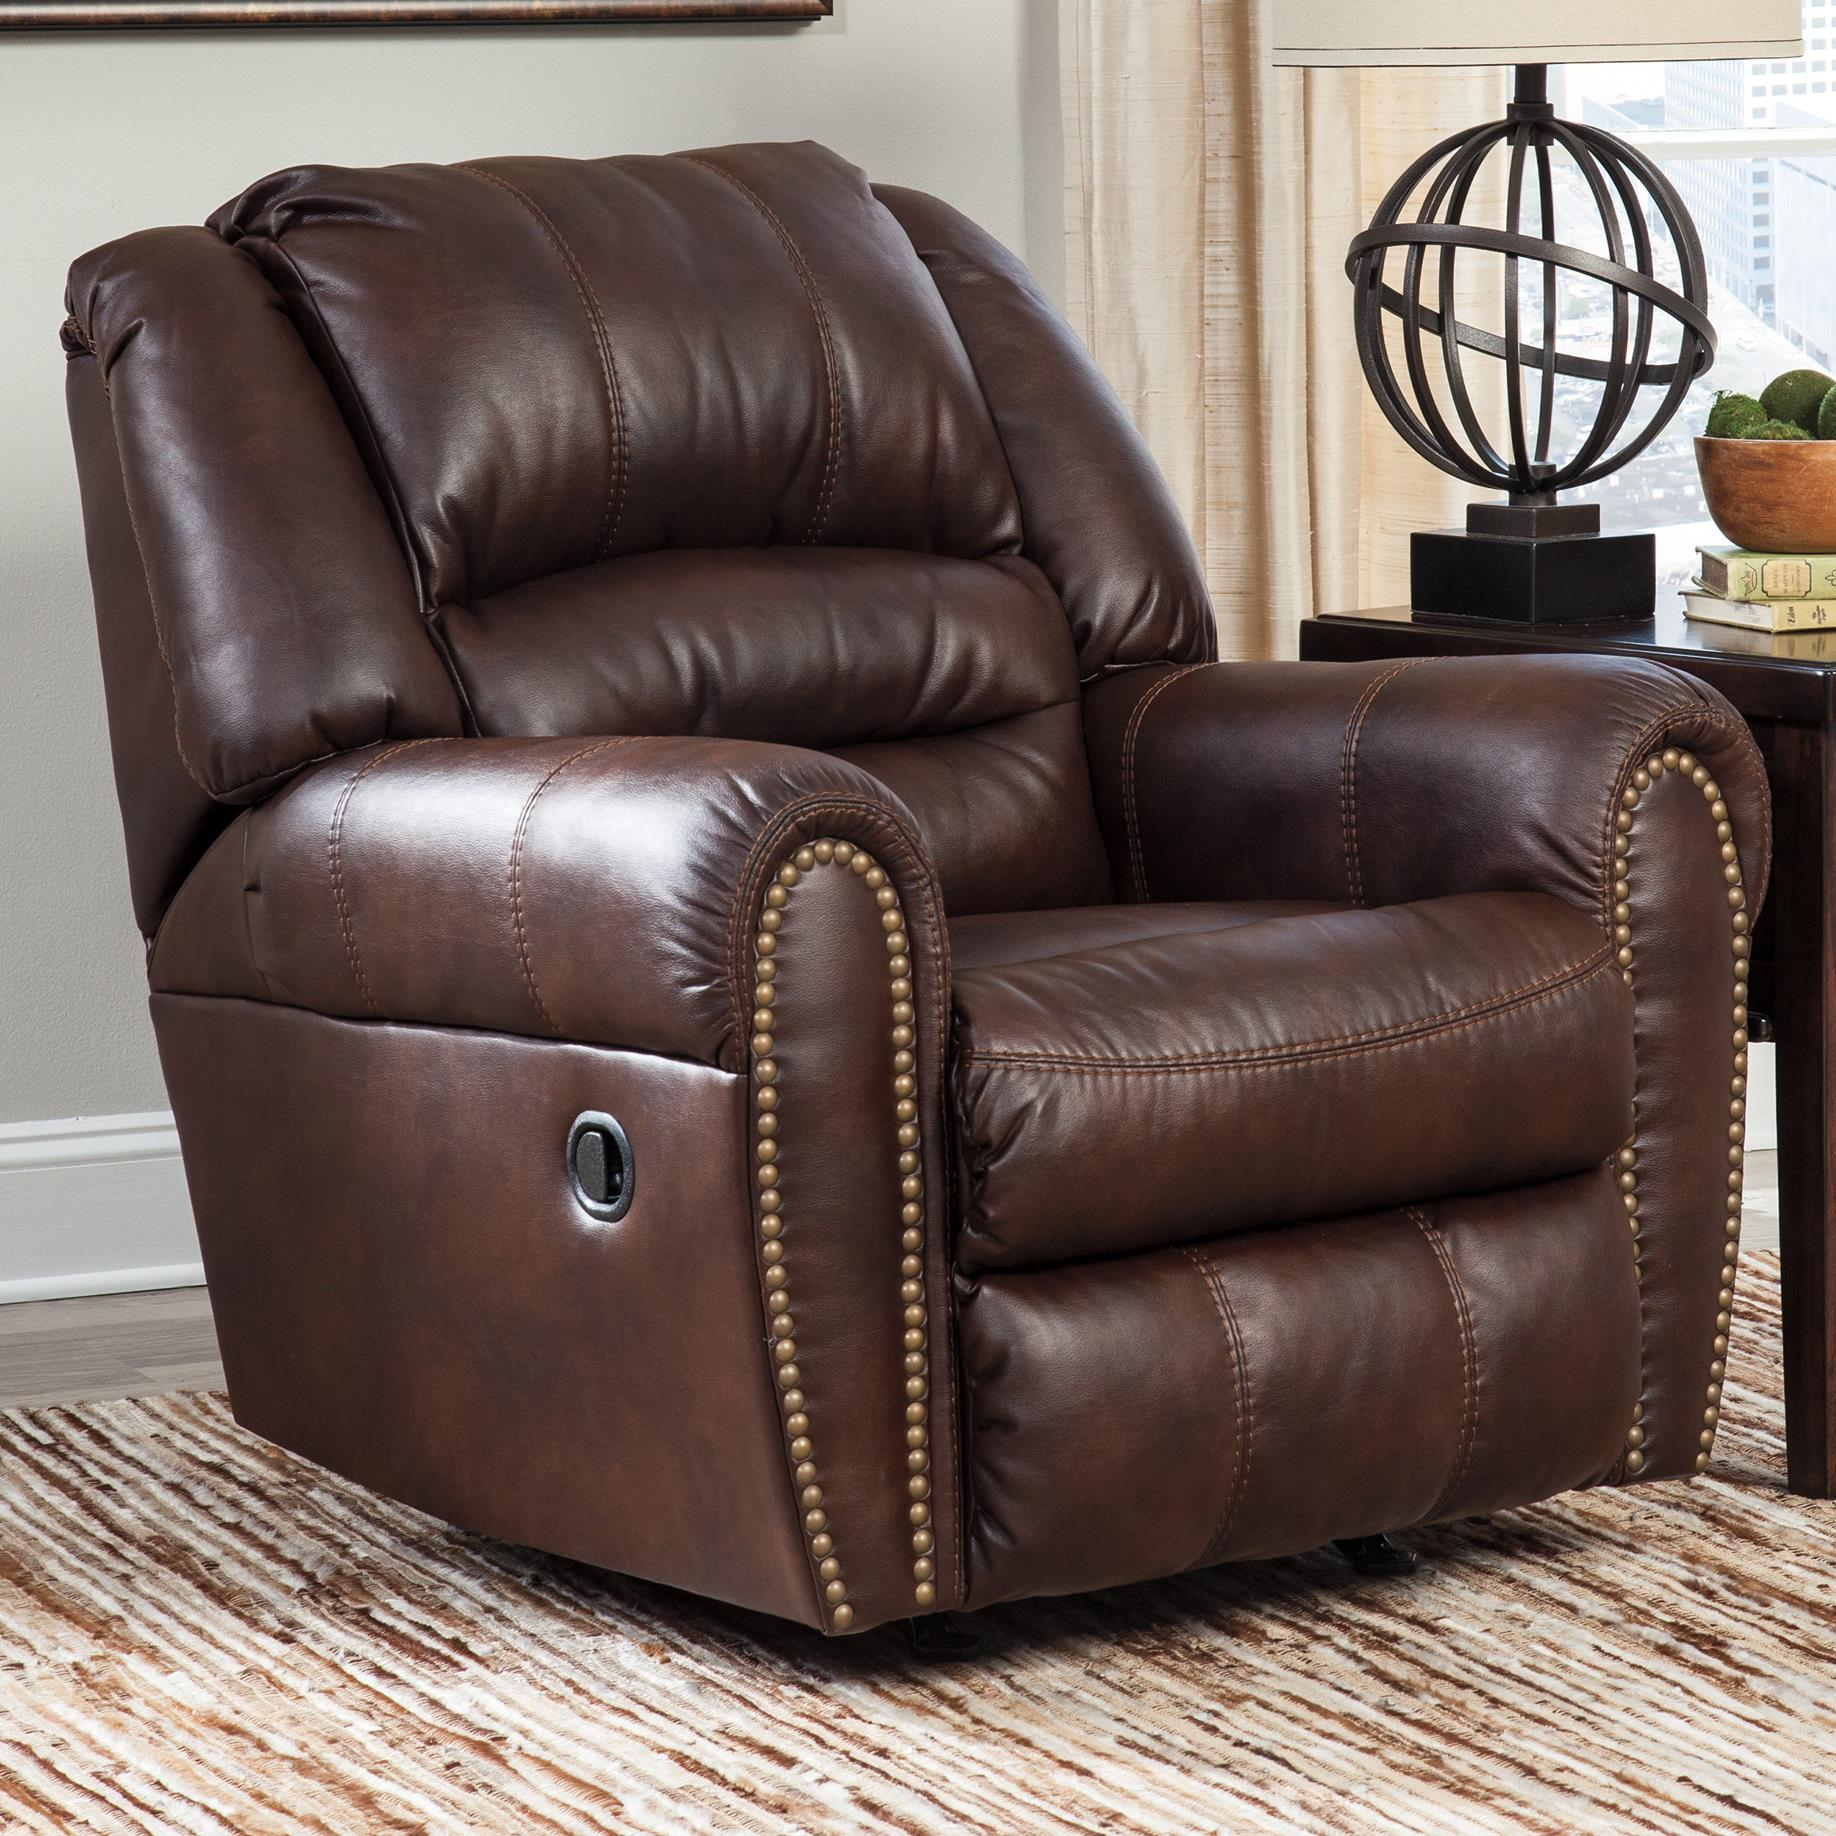 Signature Design by Ashley Manzanola Rocker Recliner - Item Number: 5120225